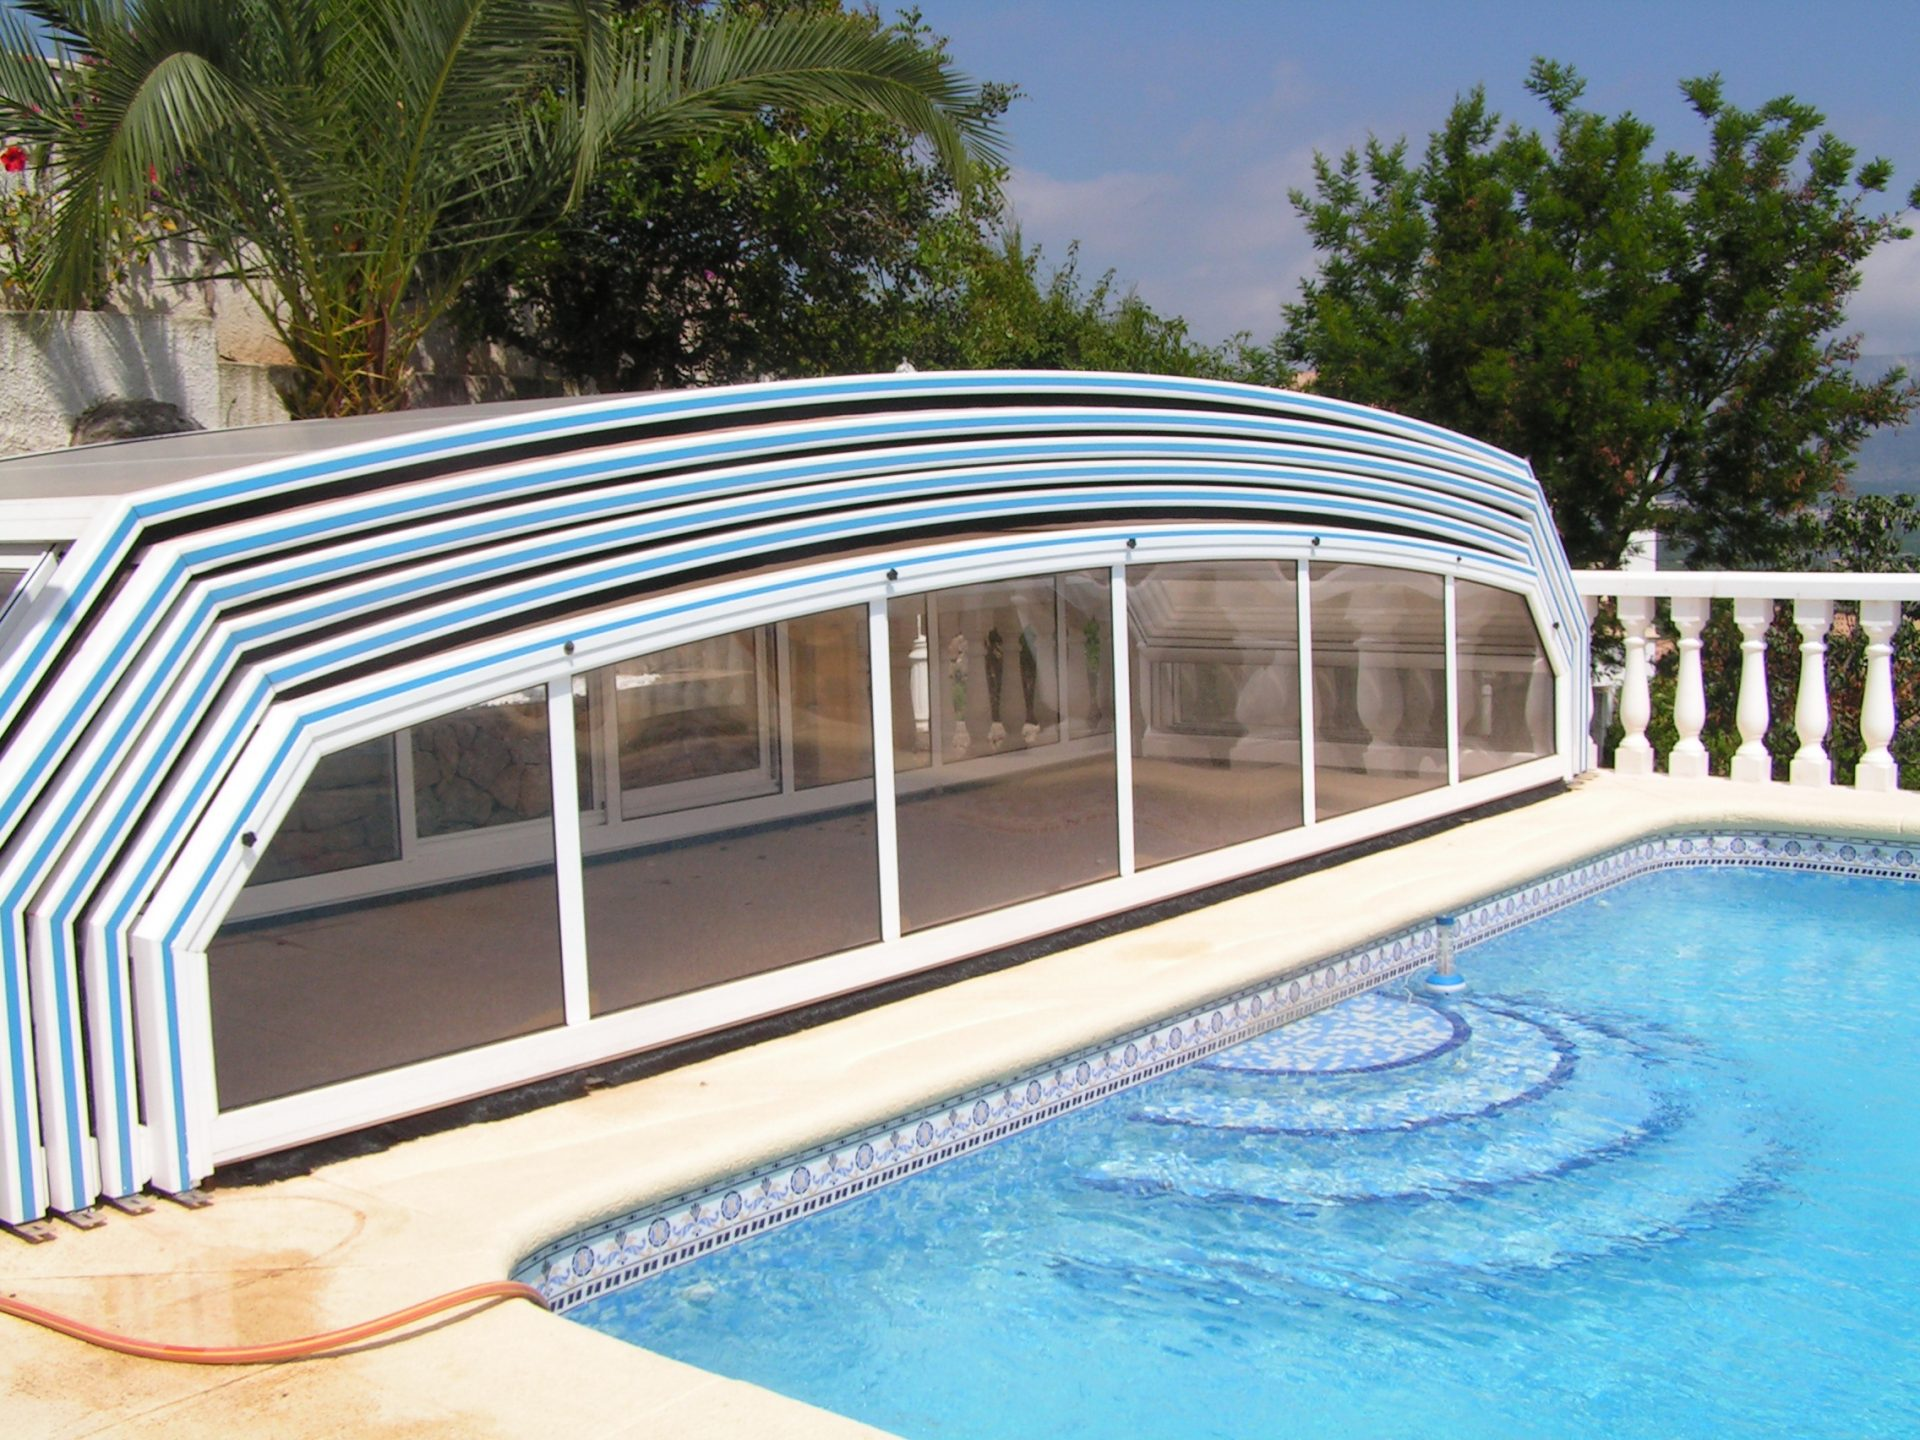 Abri piscine paris t lescopique sur roulette for Abri de piscine